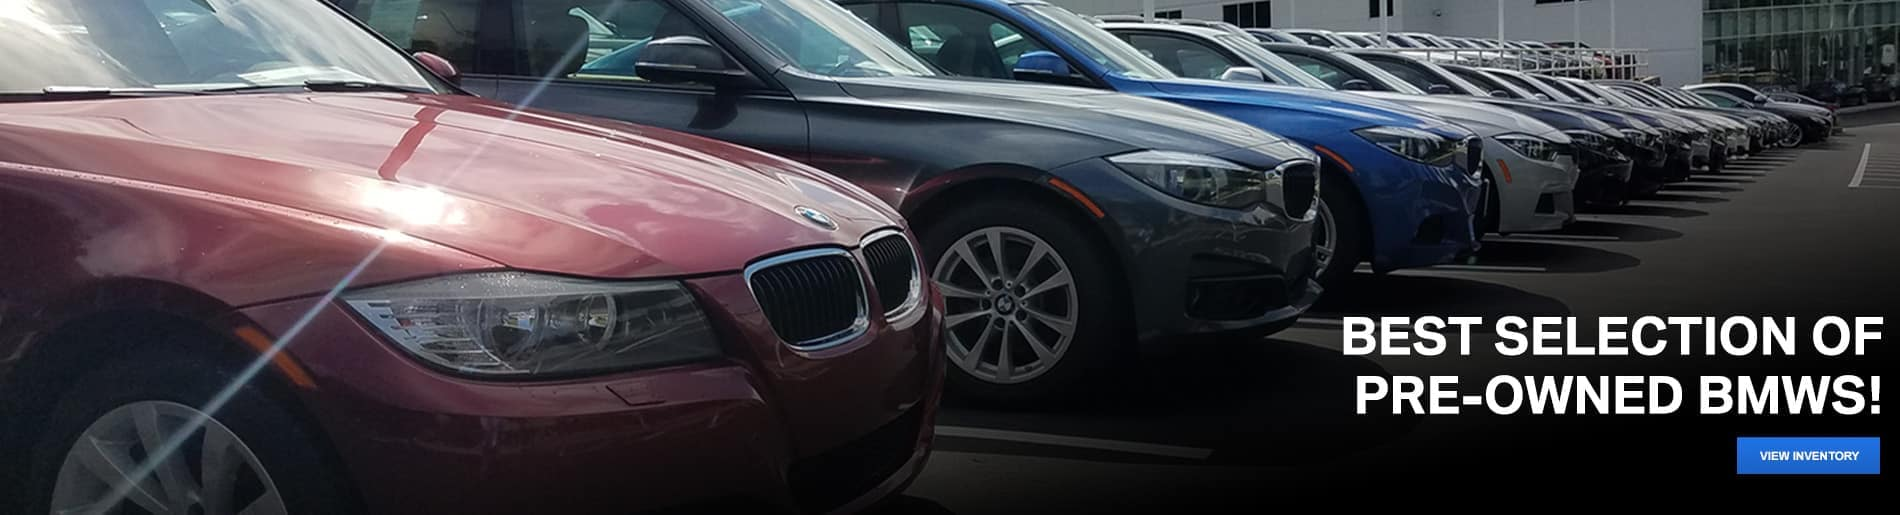 Used BMW for sale in PA